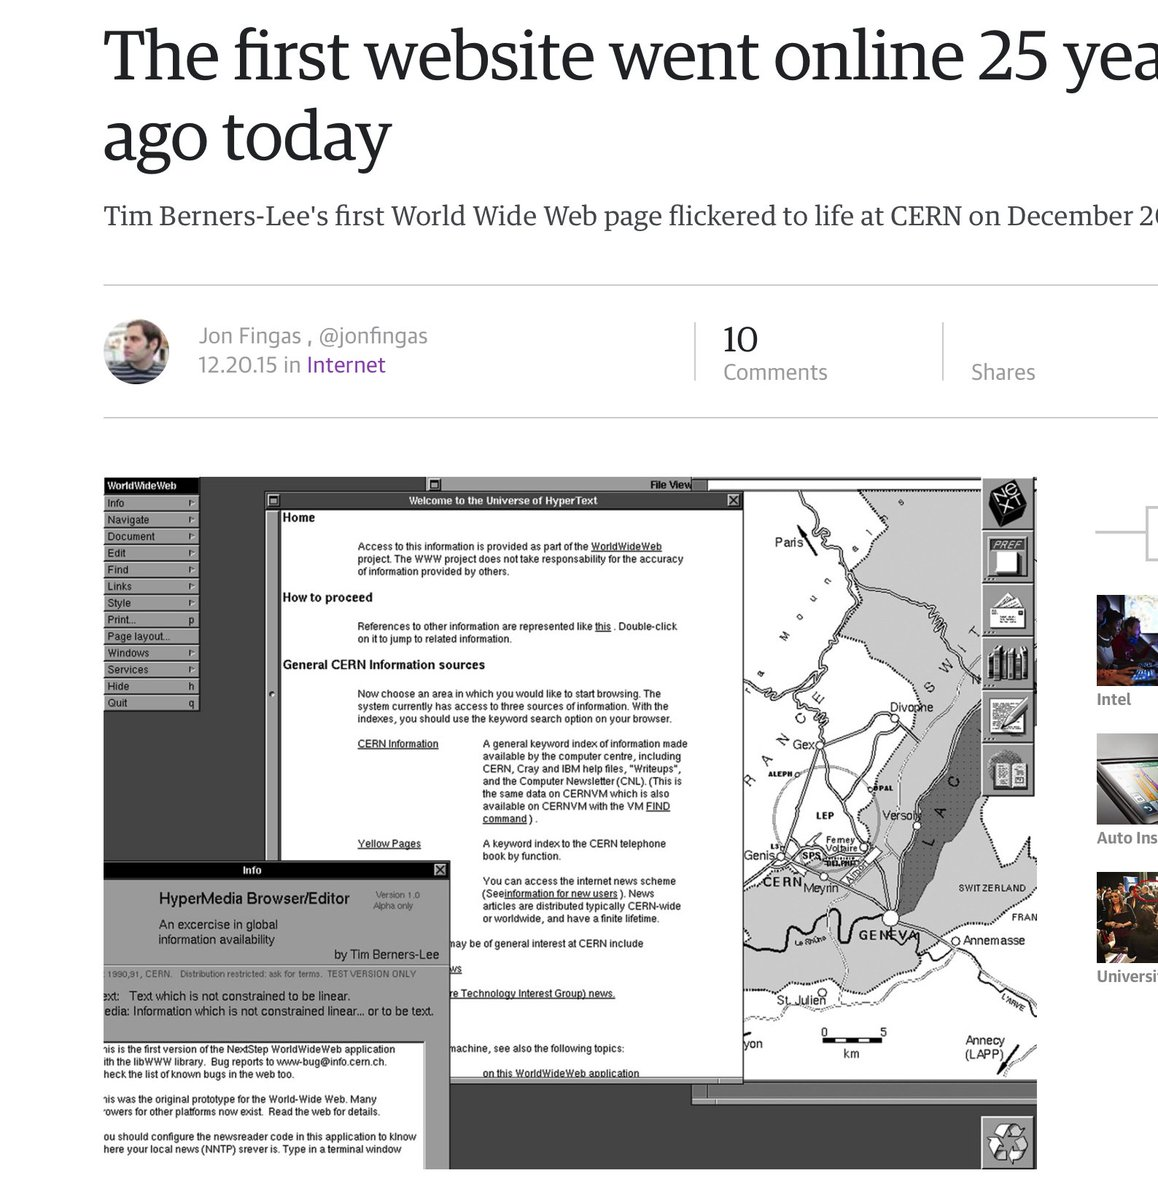 First website 25 years ago On CERN NeXT machine.  CERN decided not to license web (cuz they were not greedy jerks). https://t.co/UpMswiL49s